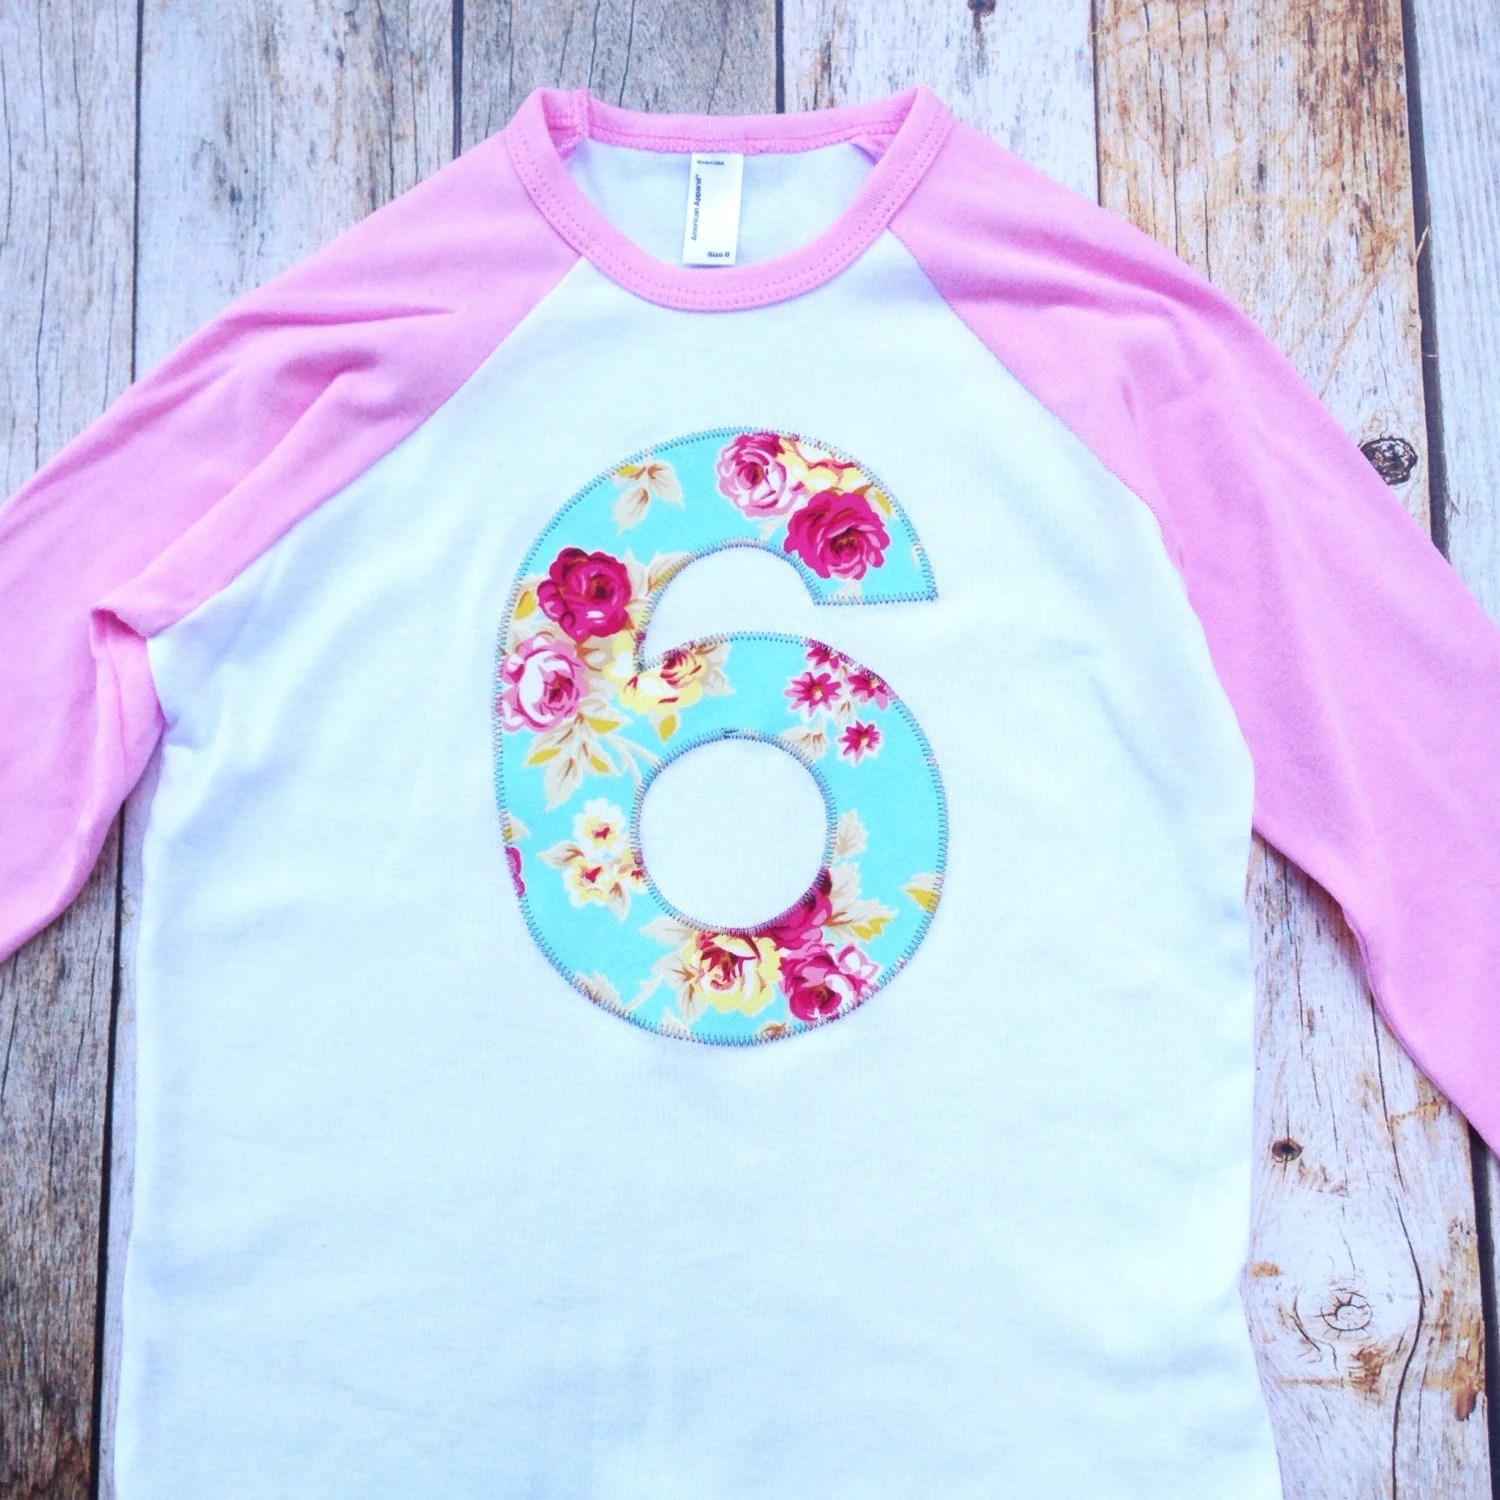 Girls 6th Birthday Shirt For 6 Year Old Aqua Teal Turquoise